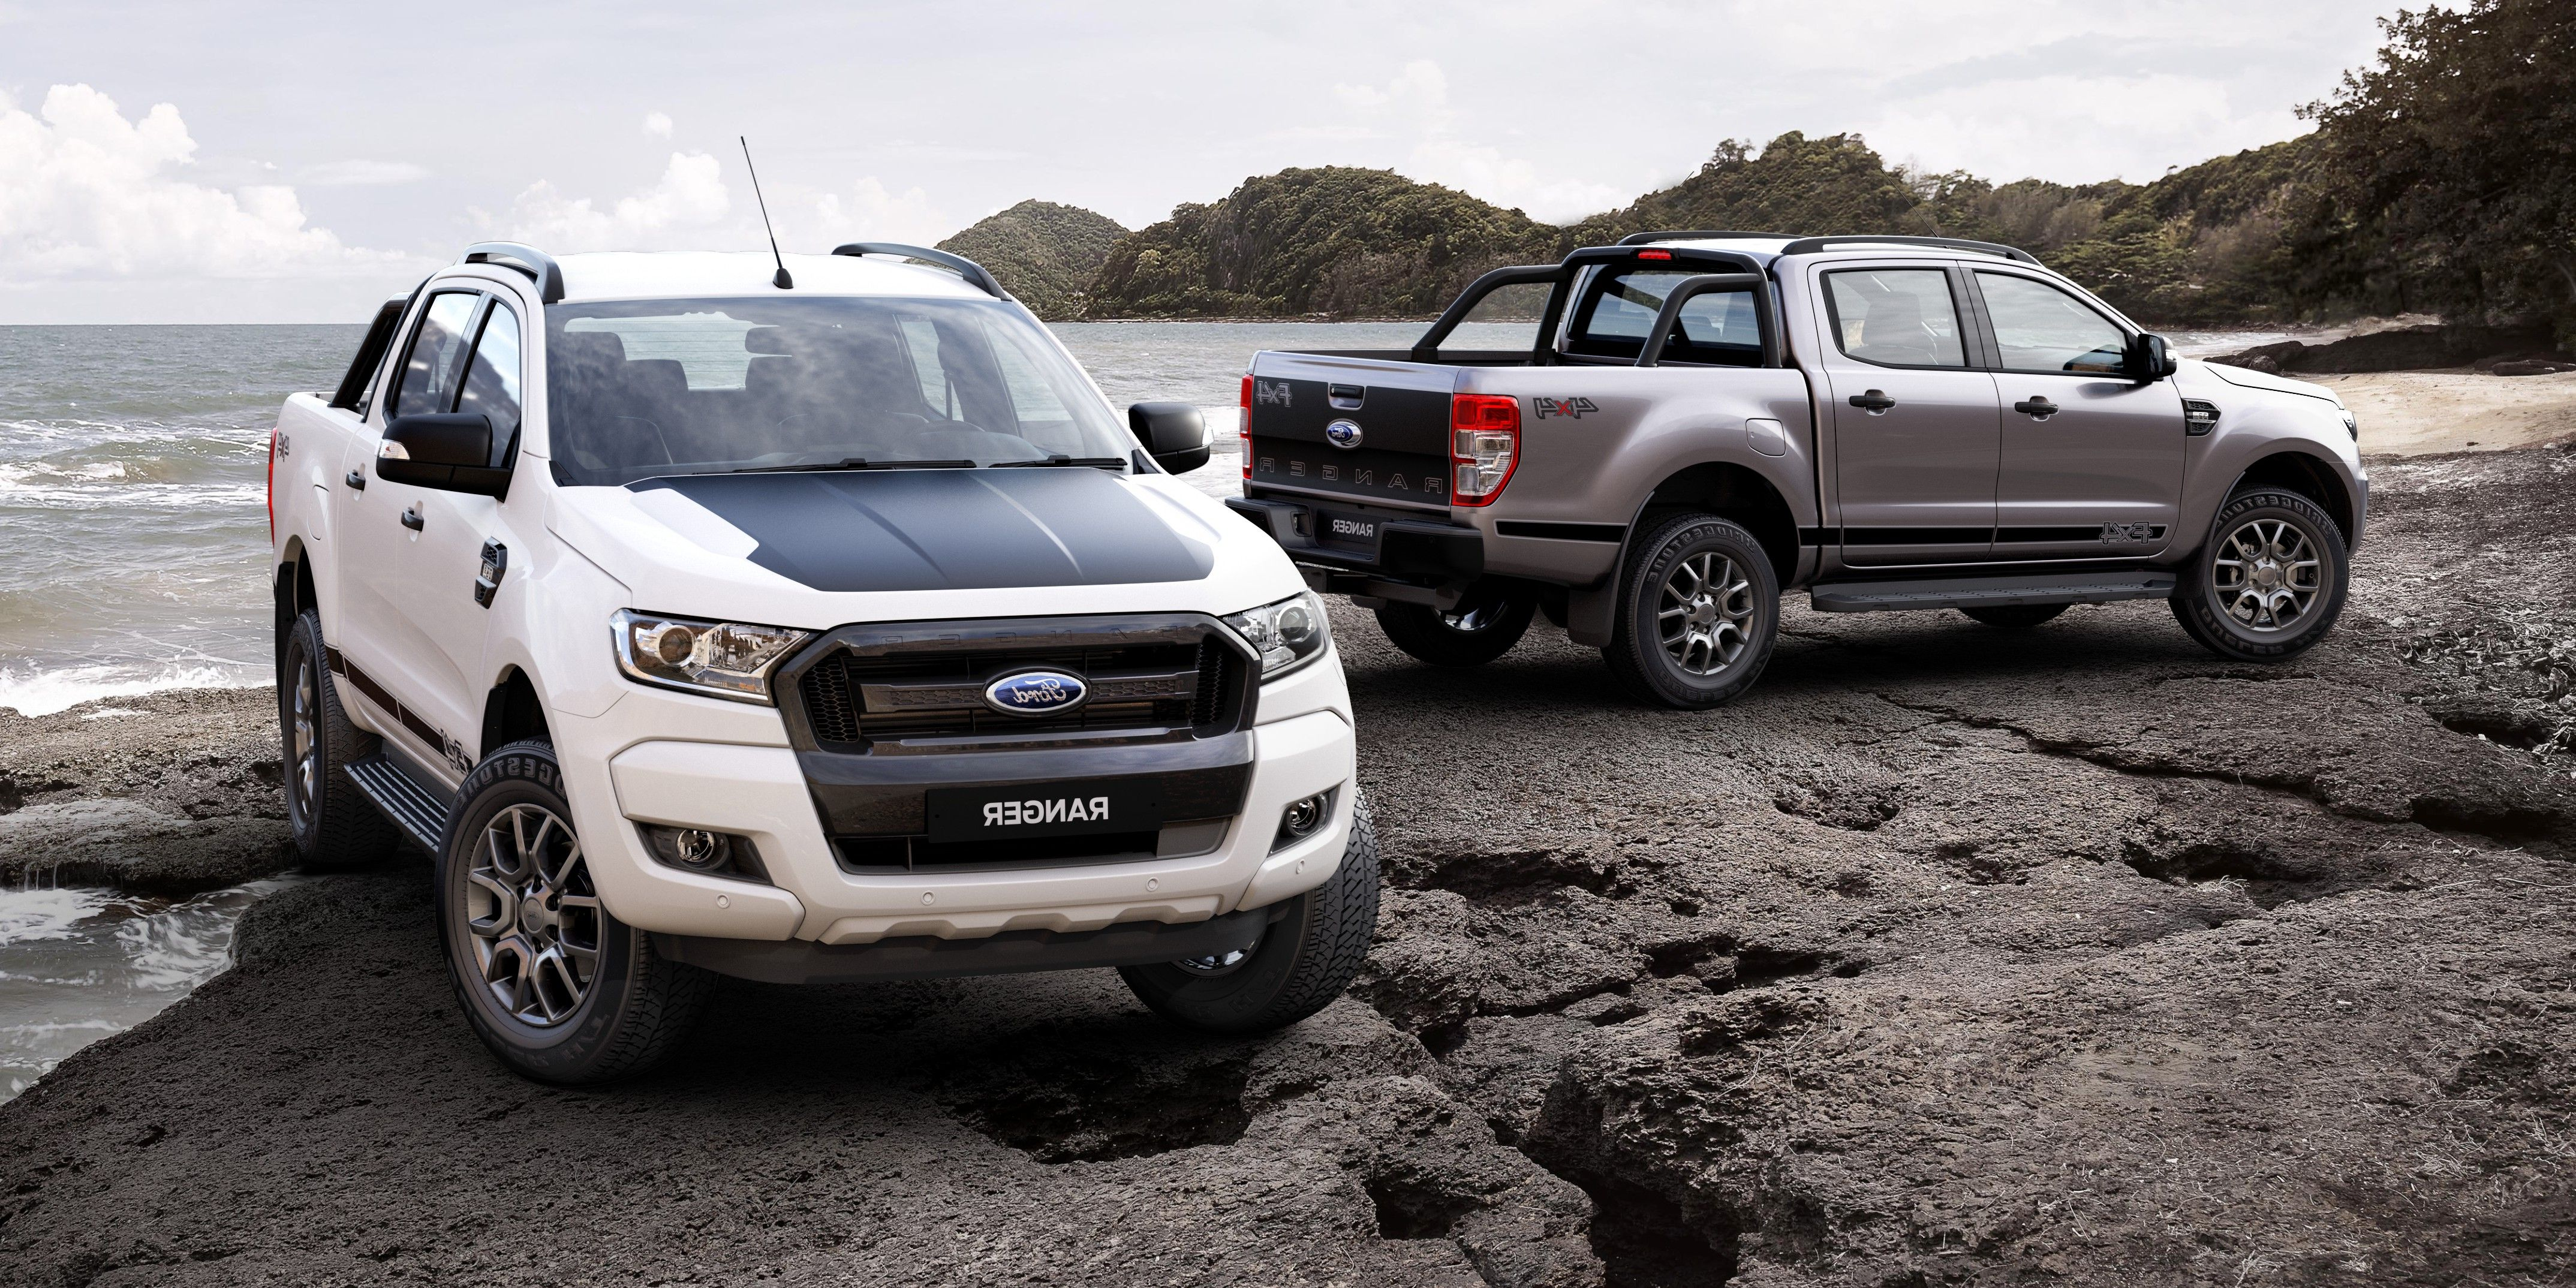 pin by future concept car on 2017 ford ranger fx4 pinterest ford ranger ford and car engine. Black Bedroom Furniture Sets. Home Design Ideas